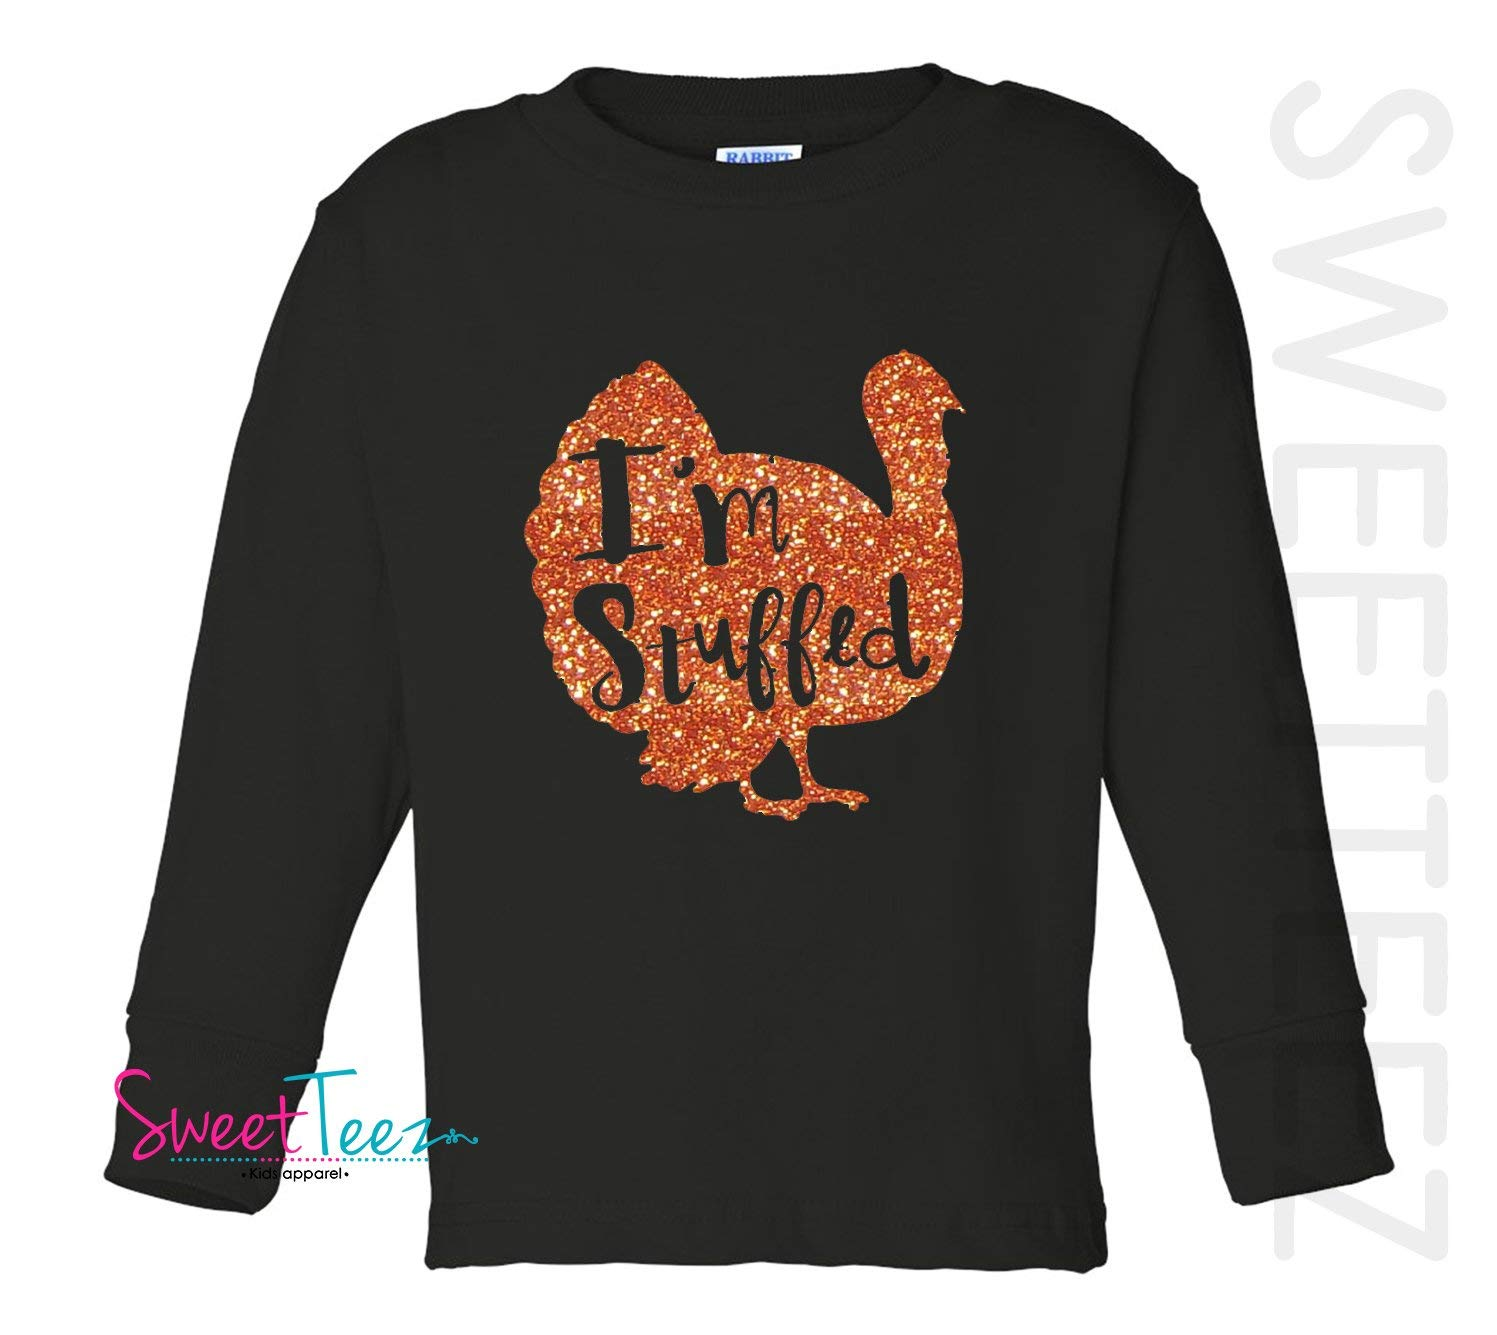 bd0f67f76 Get Quotations · Turkey Shirt Orange Glitter for Fall and Thanksgiving I'm  Stuffed Orange Black Long Sleeve